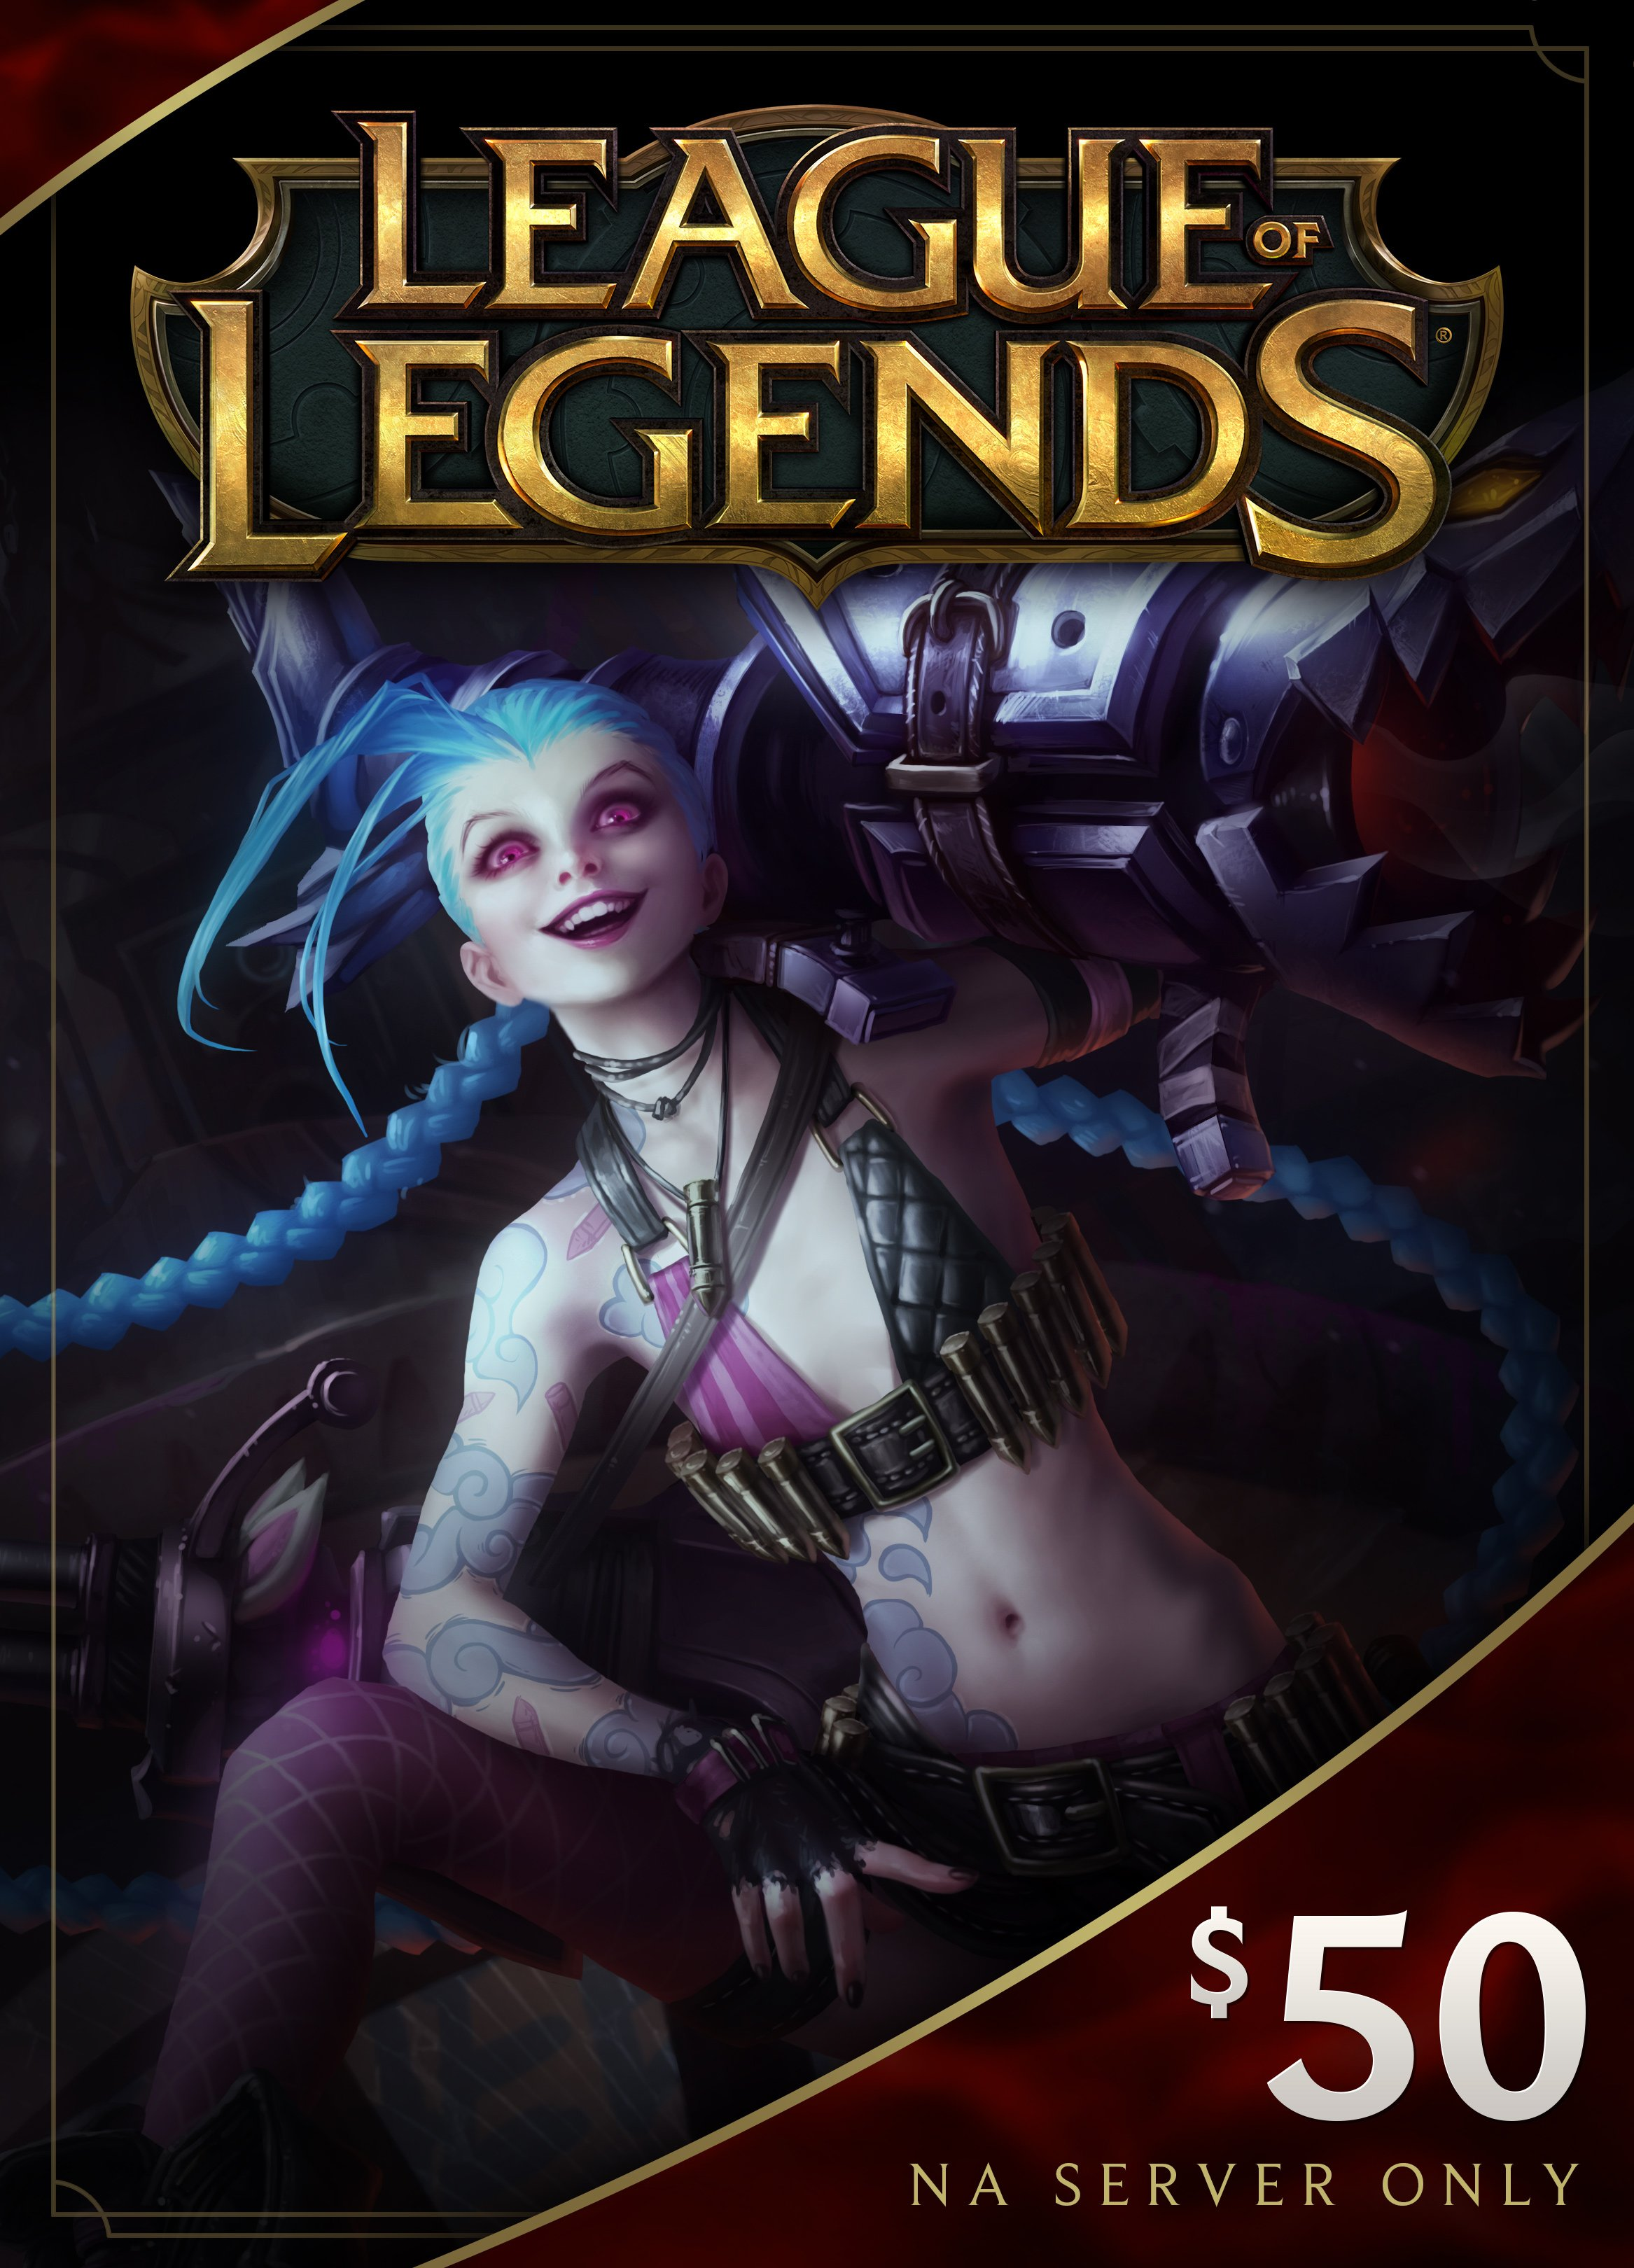 League of Legends $50 Gift Card – 7200 Riot Points - NA Server Only [Online Game Code] by Riot Games